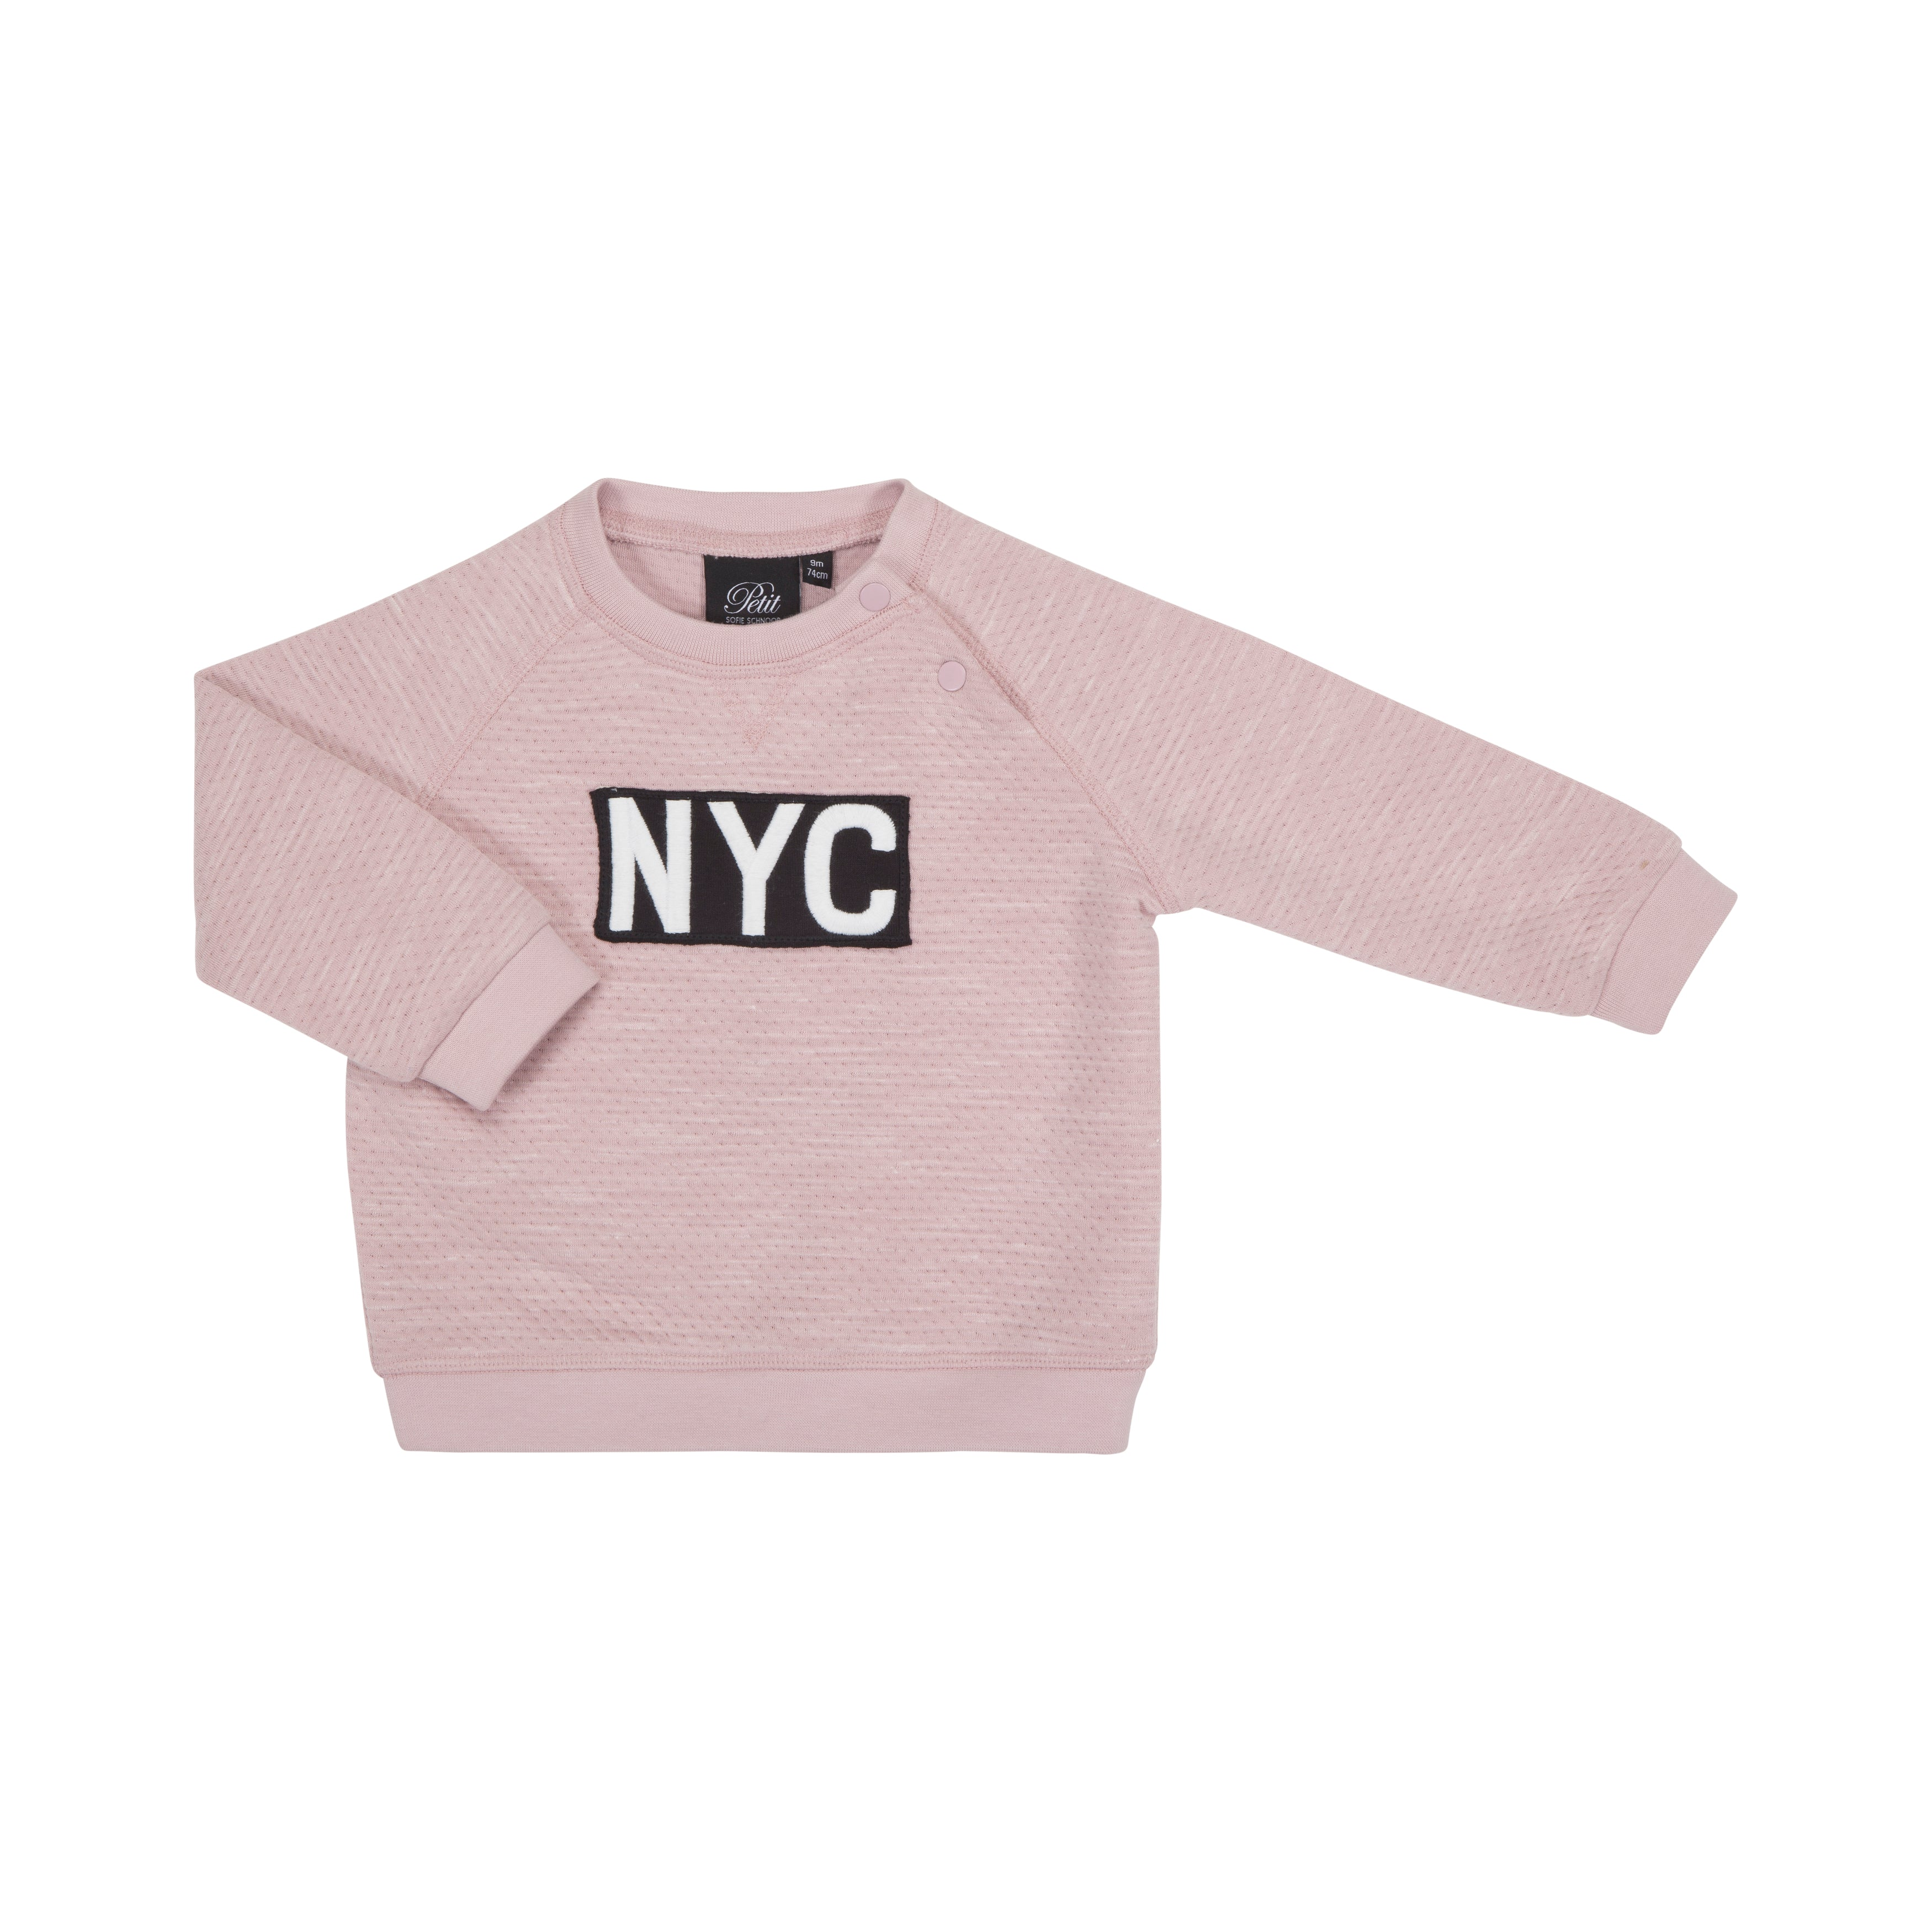 Petit by Sofie Schnoor - Baby Sweatshirt, NYC - Powder